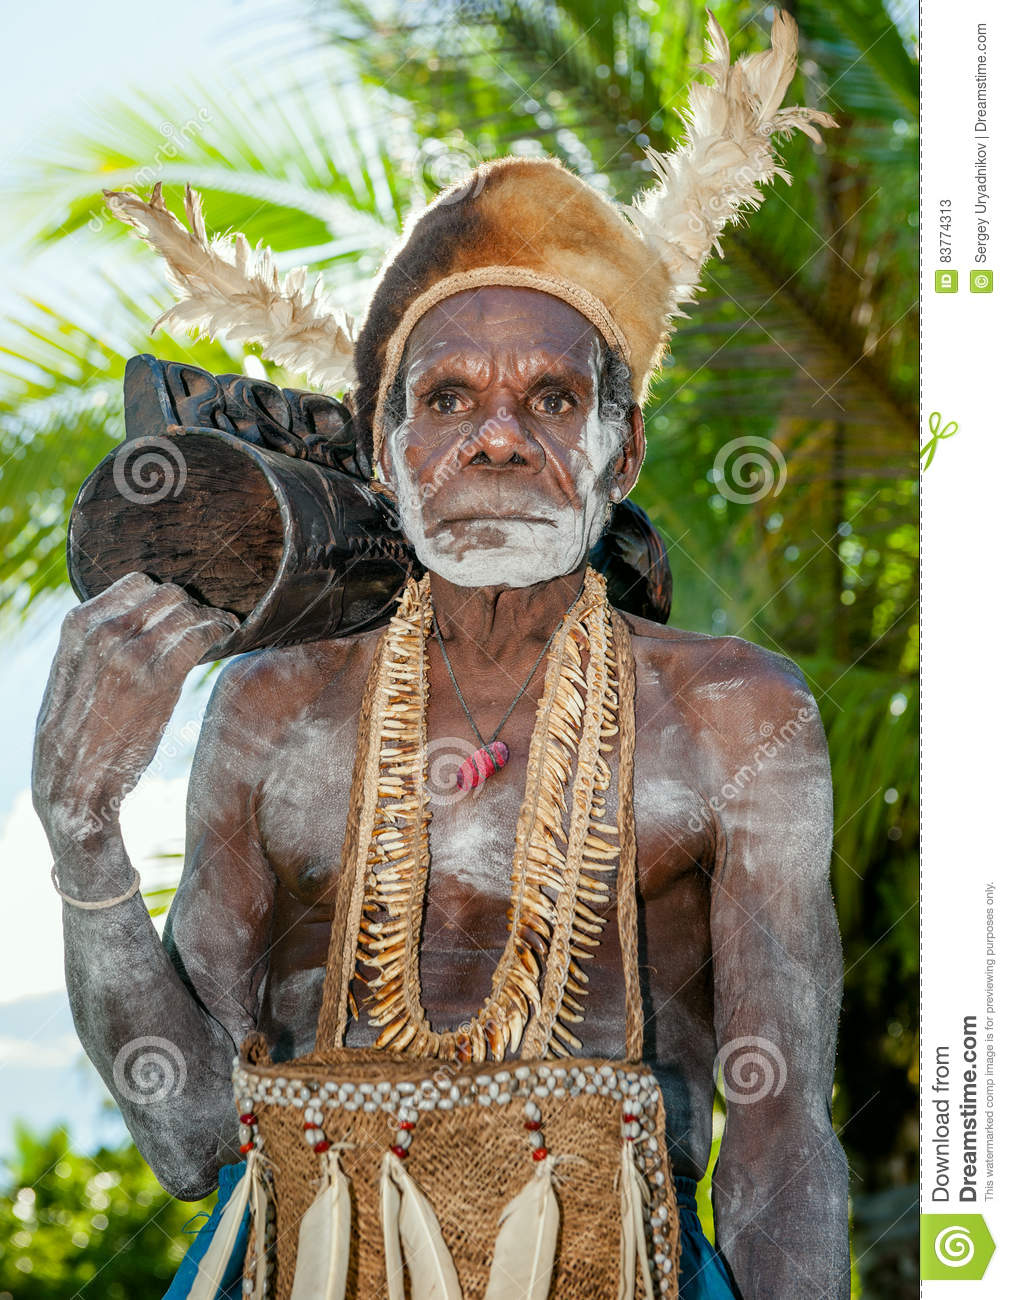 Leader of Asmat tribe with drum em